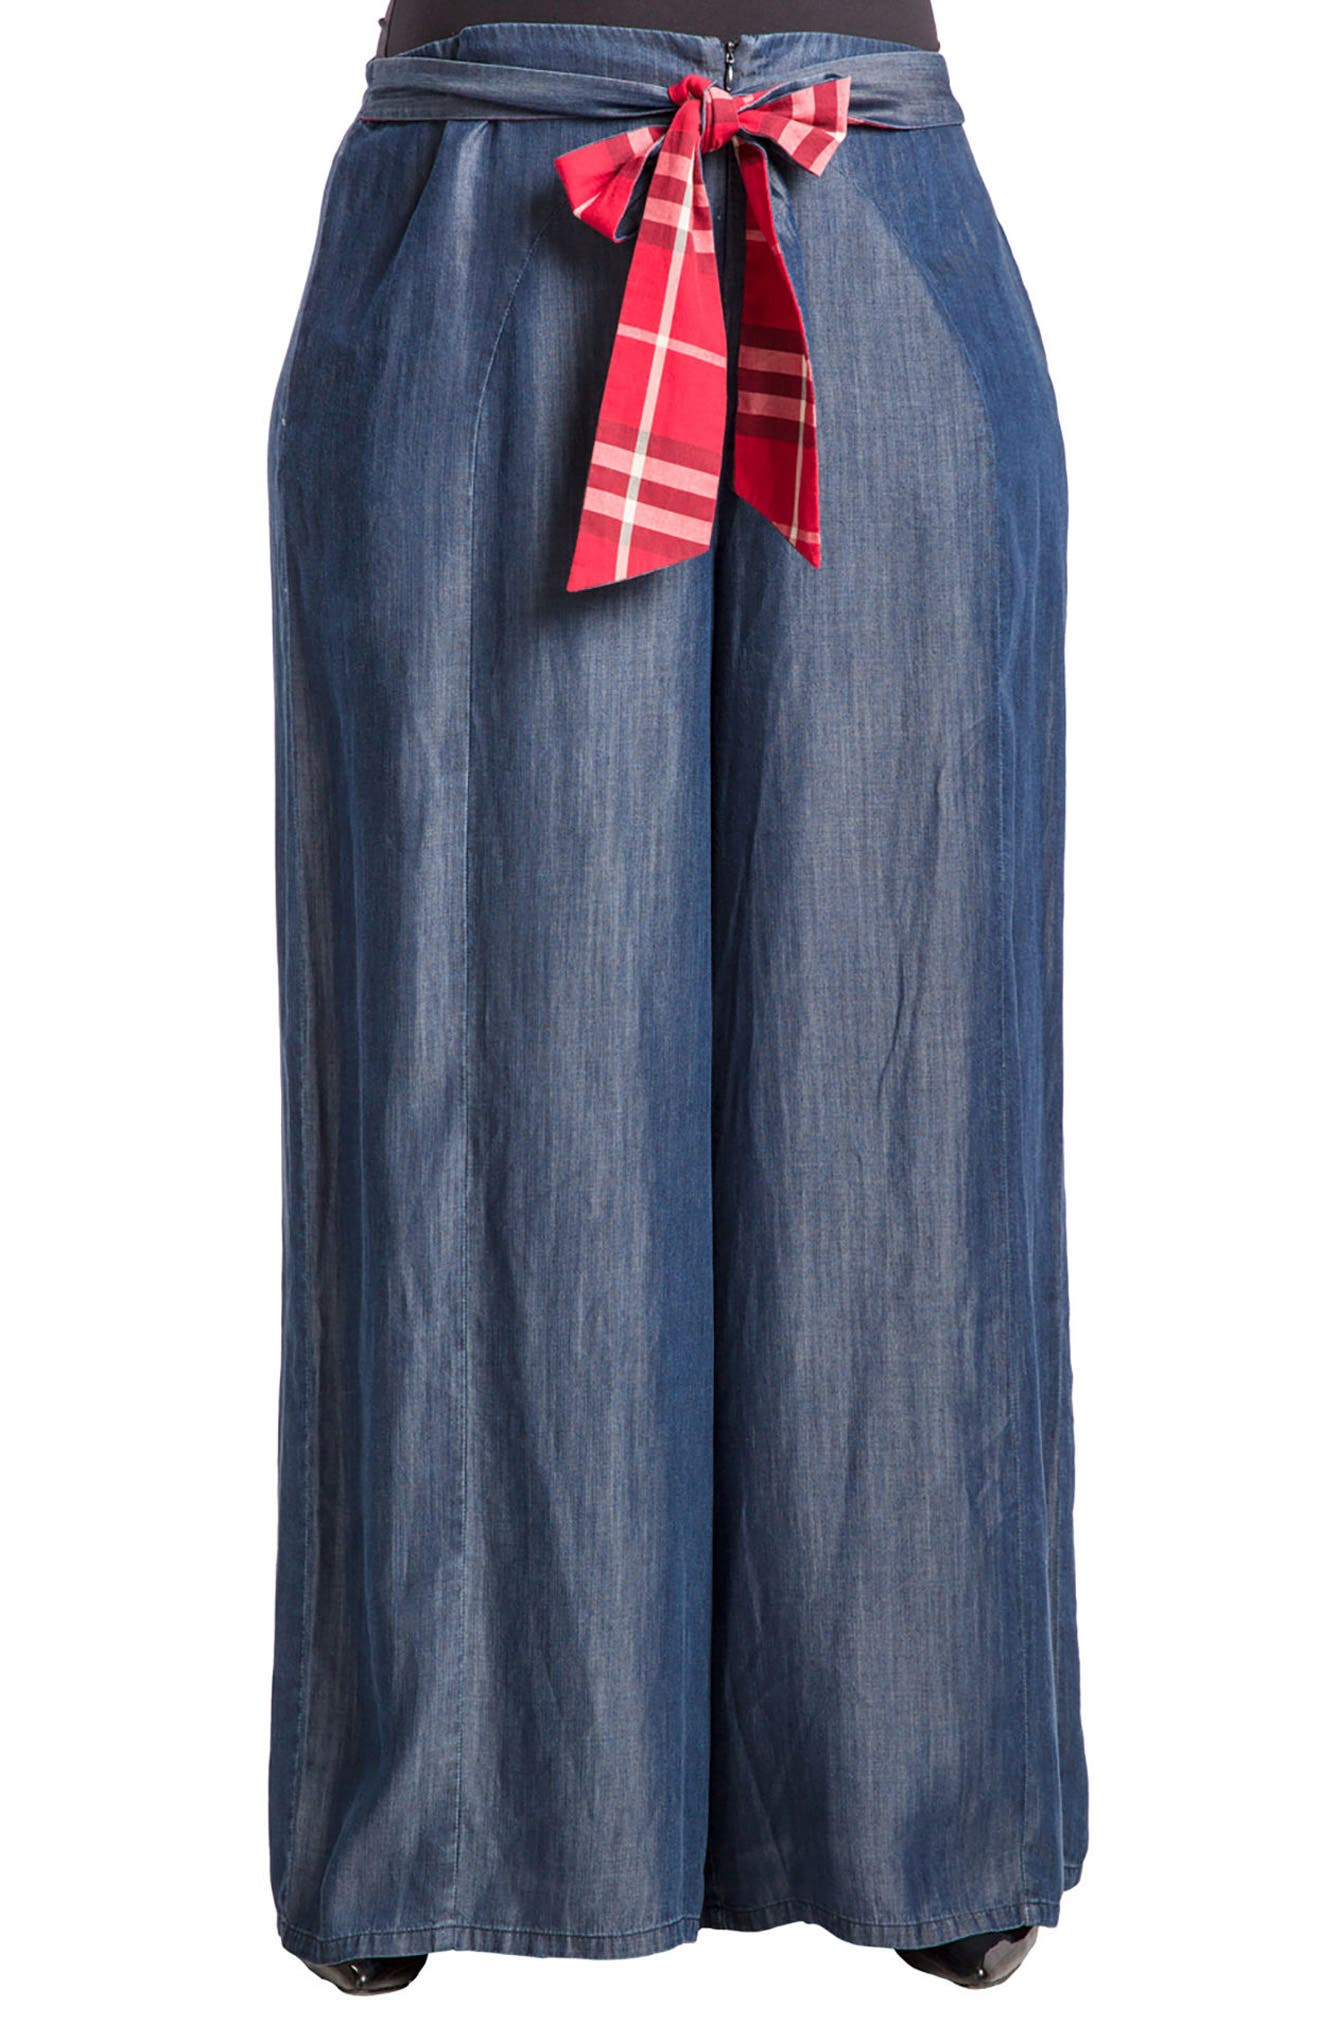 Poetic Justice Shay Tie Waist Denim Palazzo Pants (Plus Size)